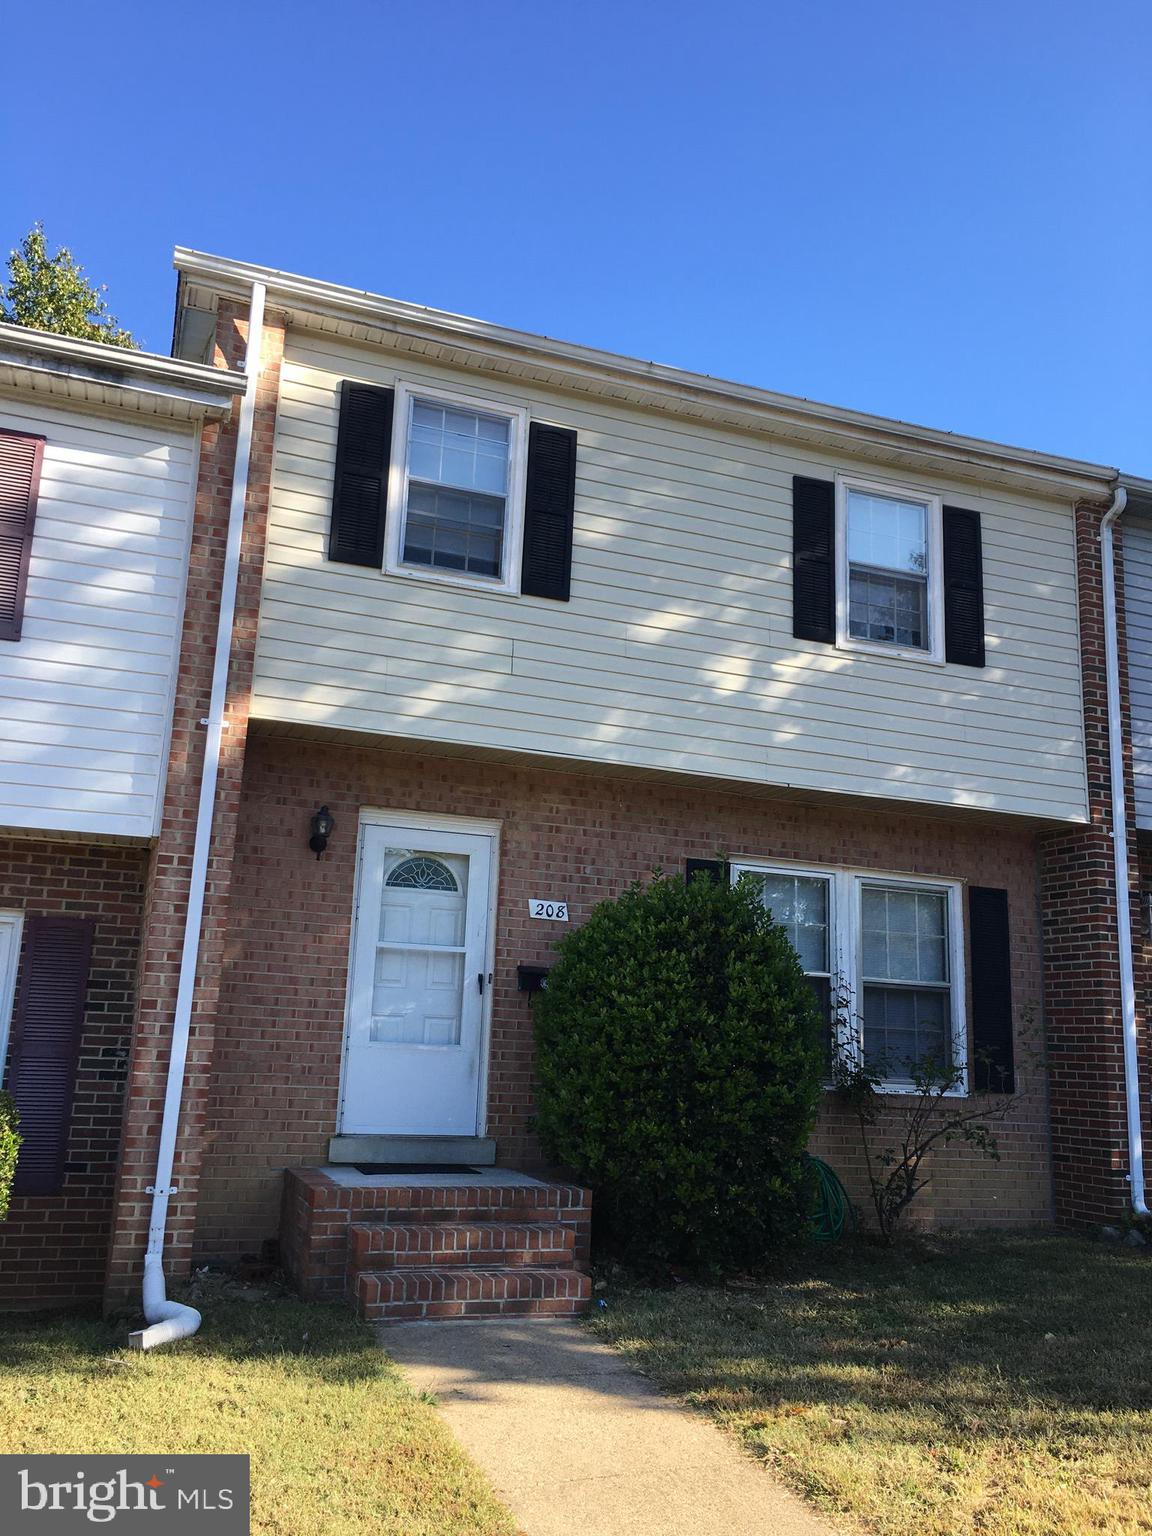 3 Level Townhome ...3 Bedroom, 1 Full Bath and 2 Half Baths.  Large/Spacious Master Bedroom has its